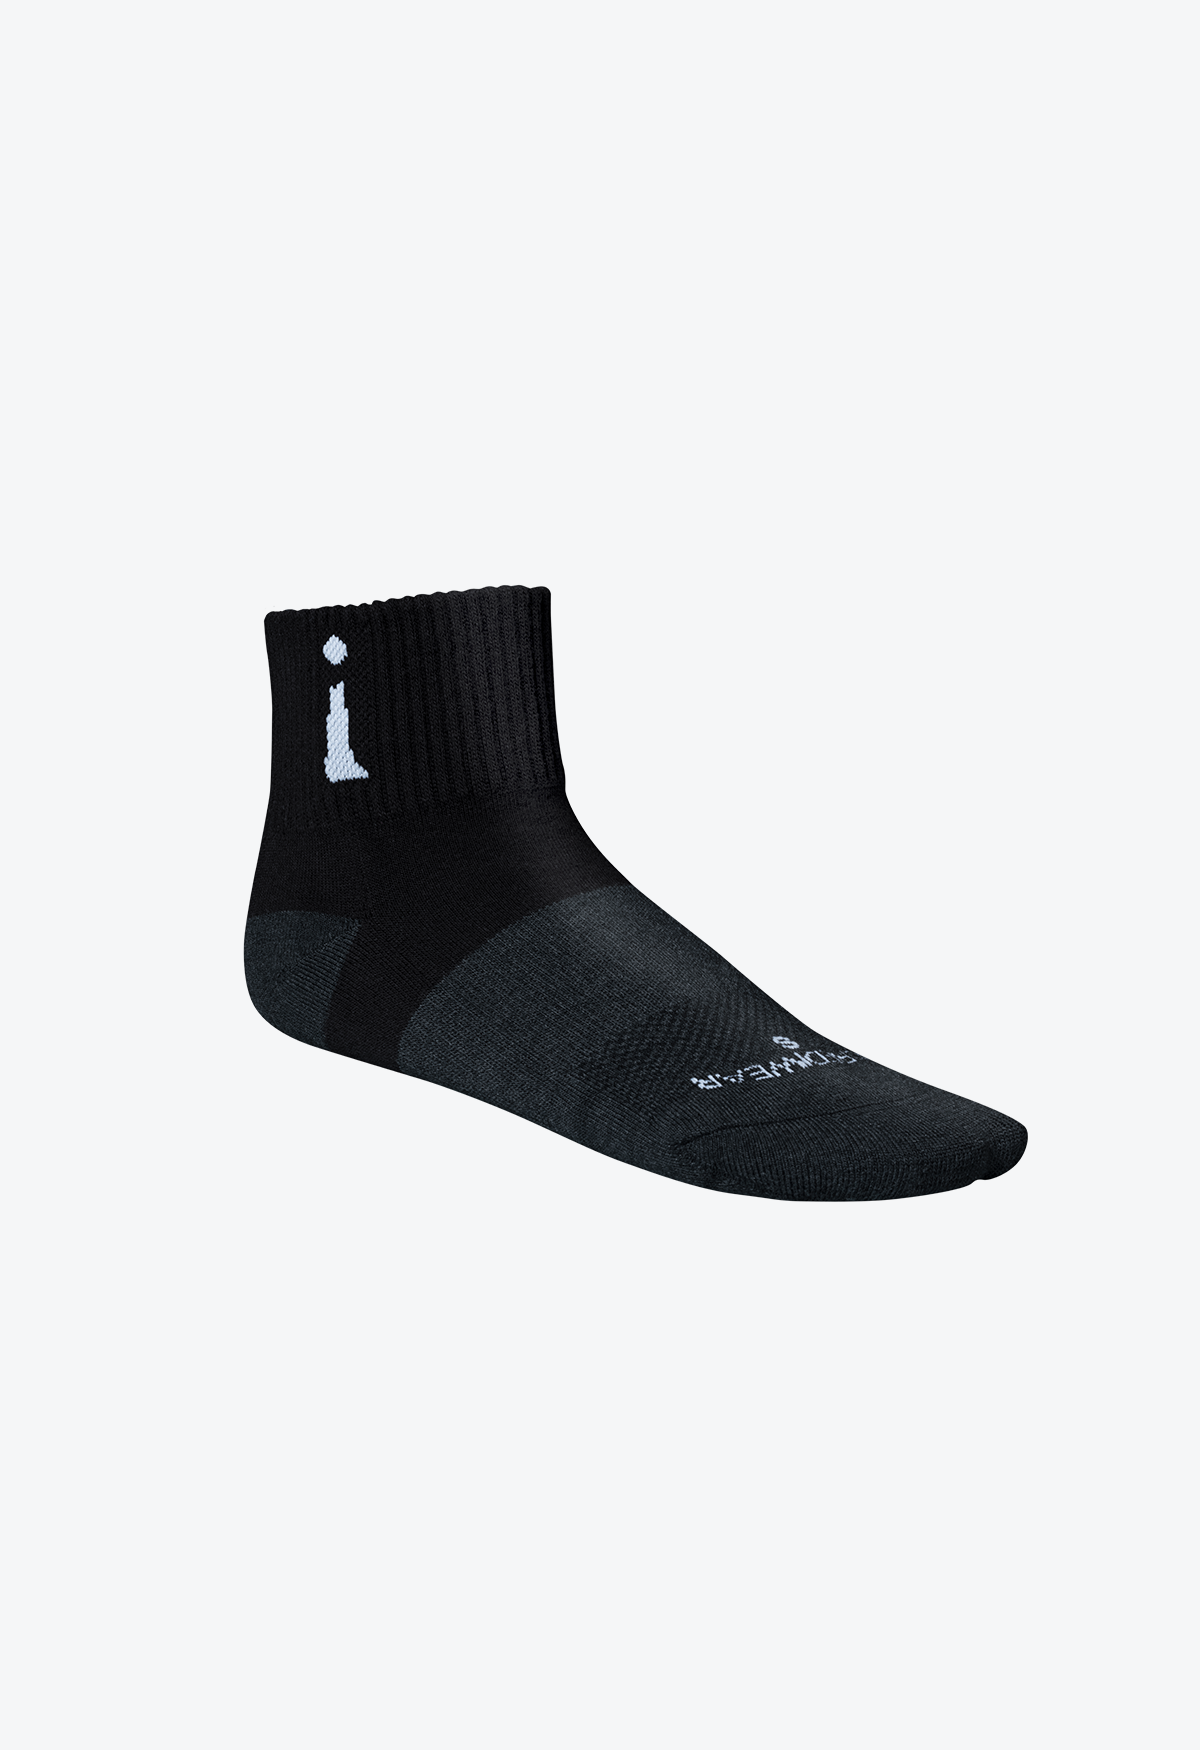 Active_Sock_Black_Quarter_left